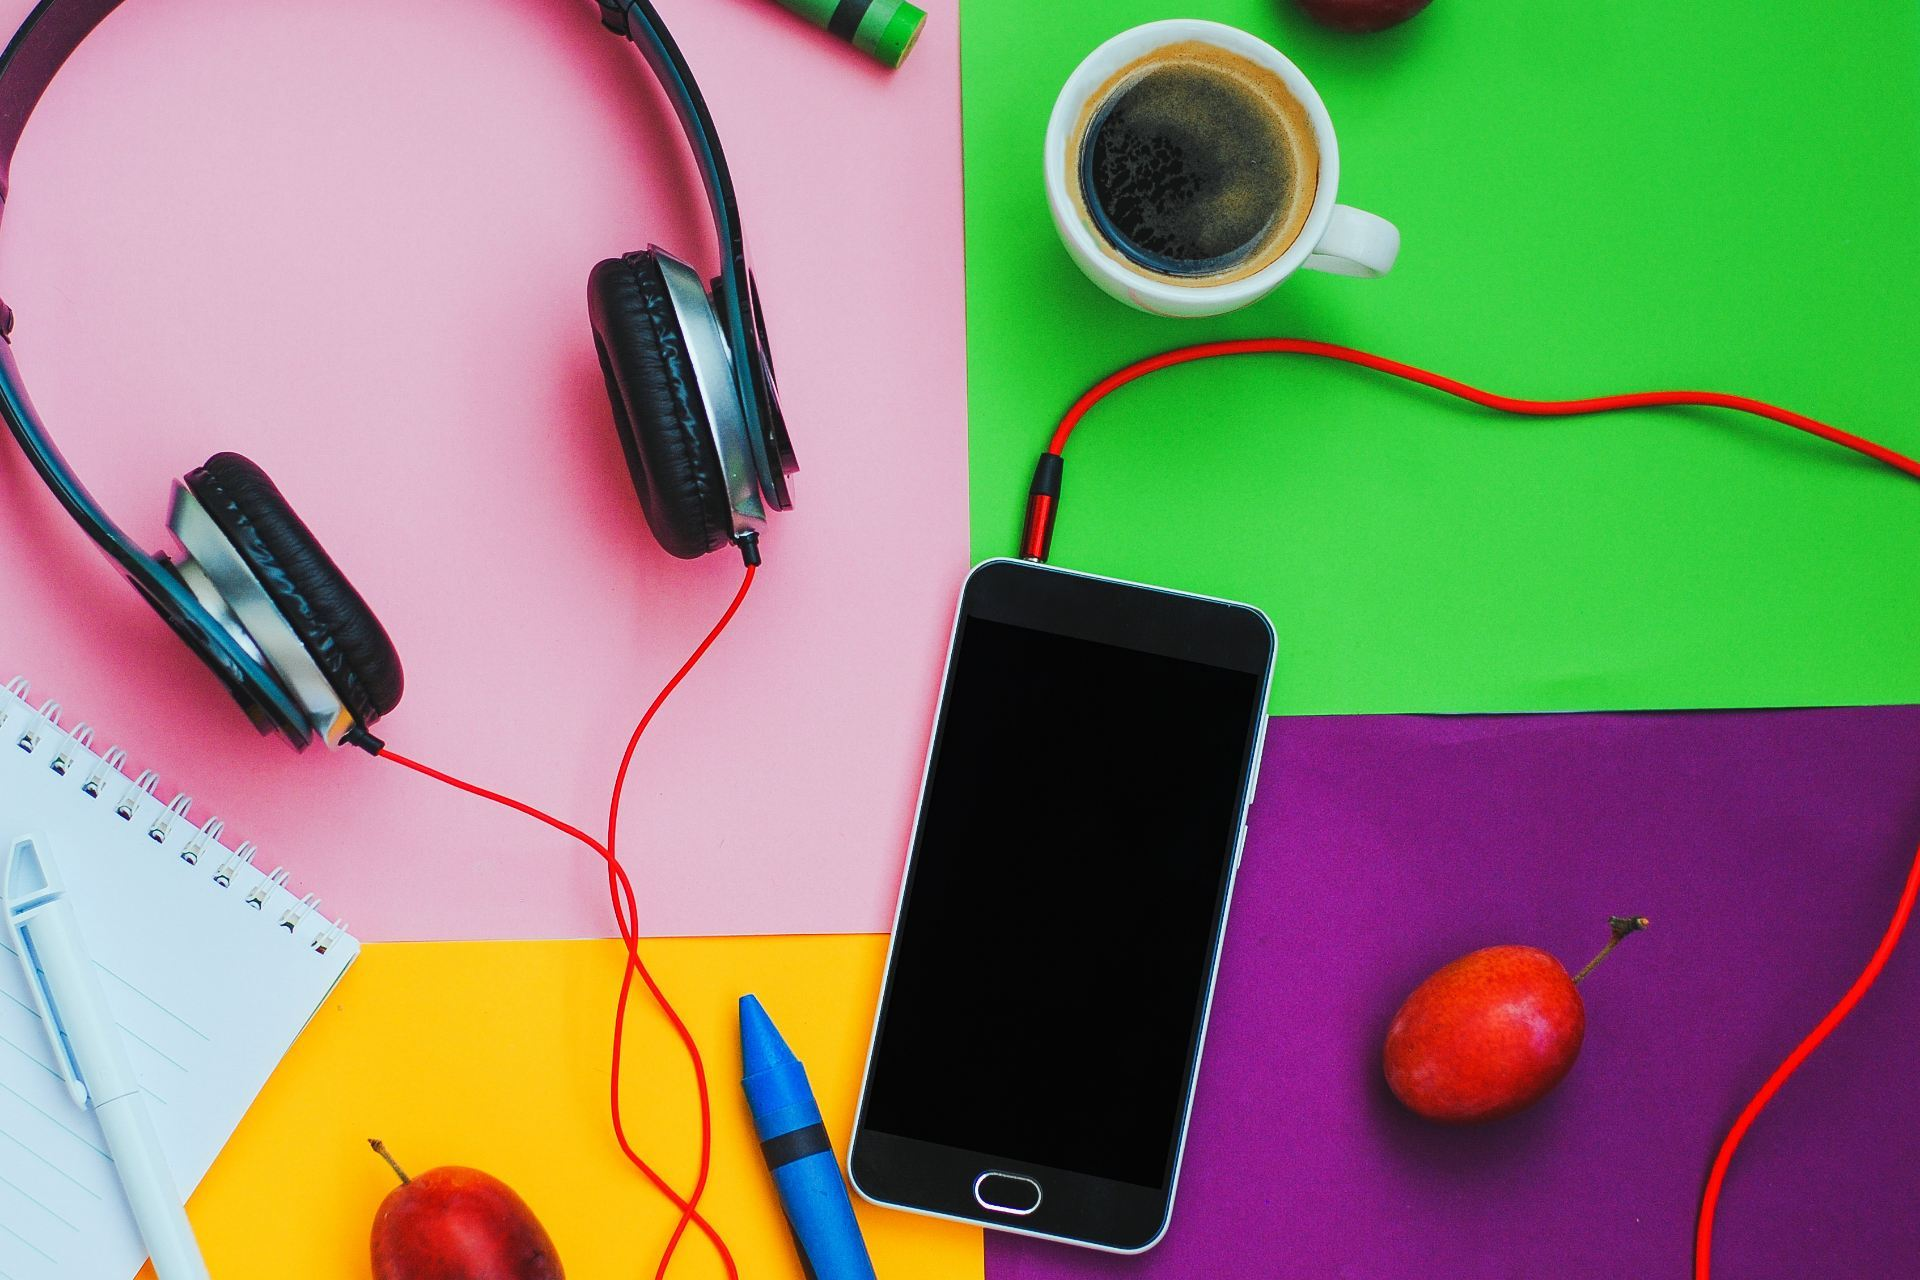 The Edublogger's Guide To Podcasting